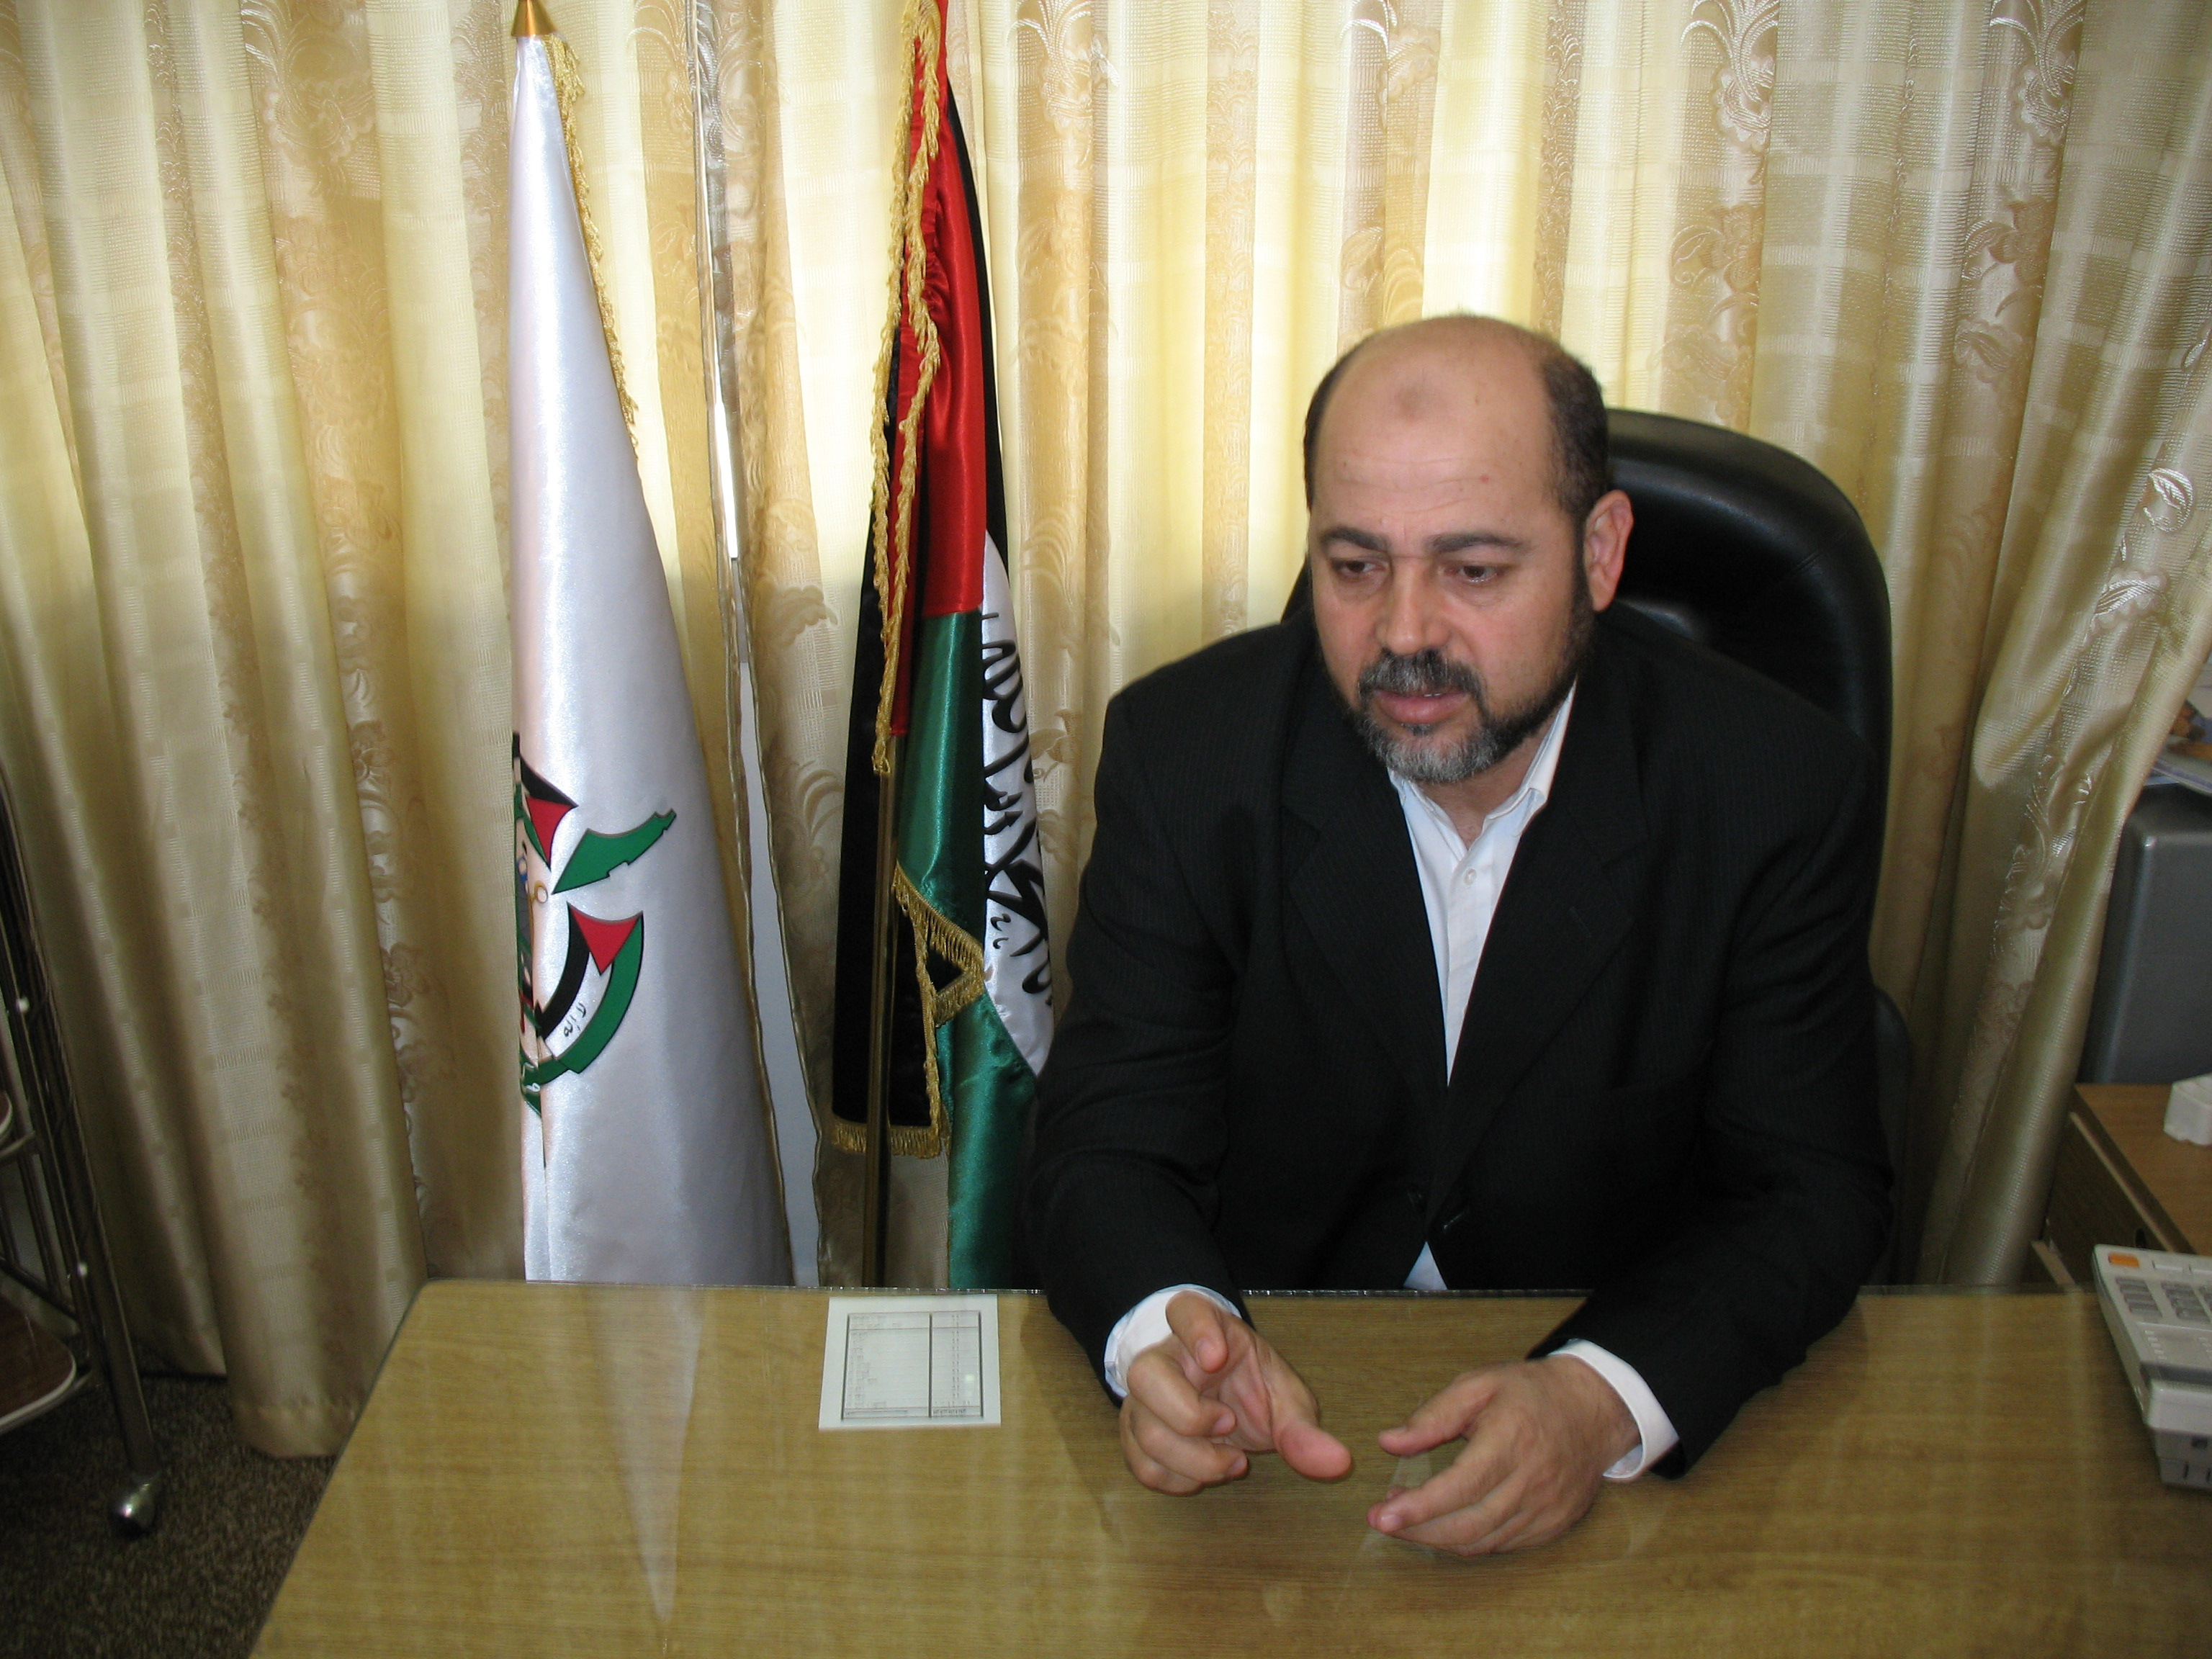 Mousa Mohammed Abu Marzook